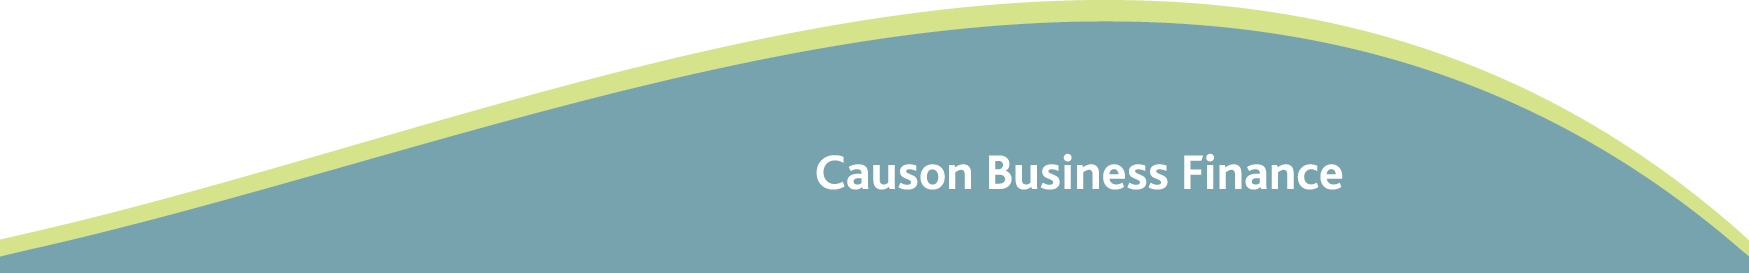 Causon Business Finance